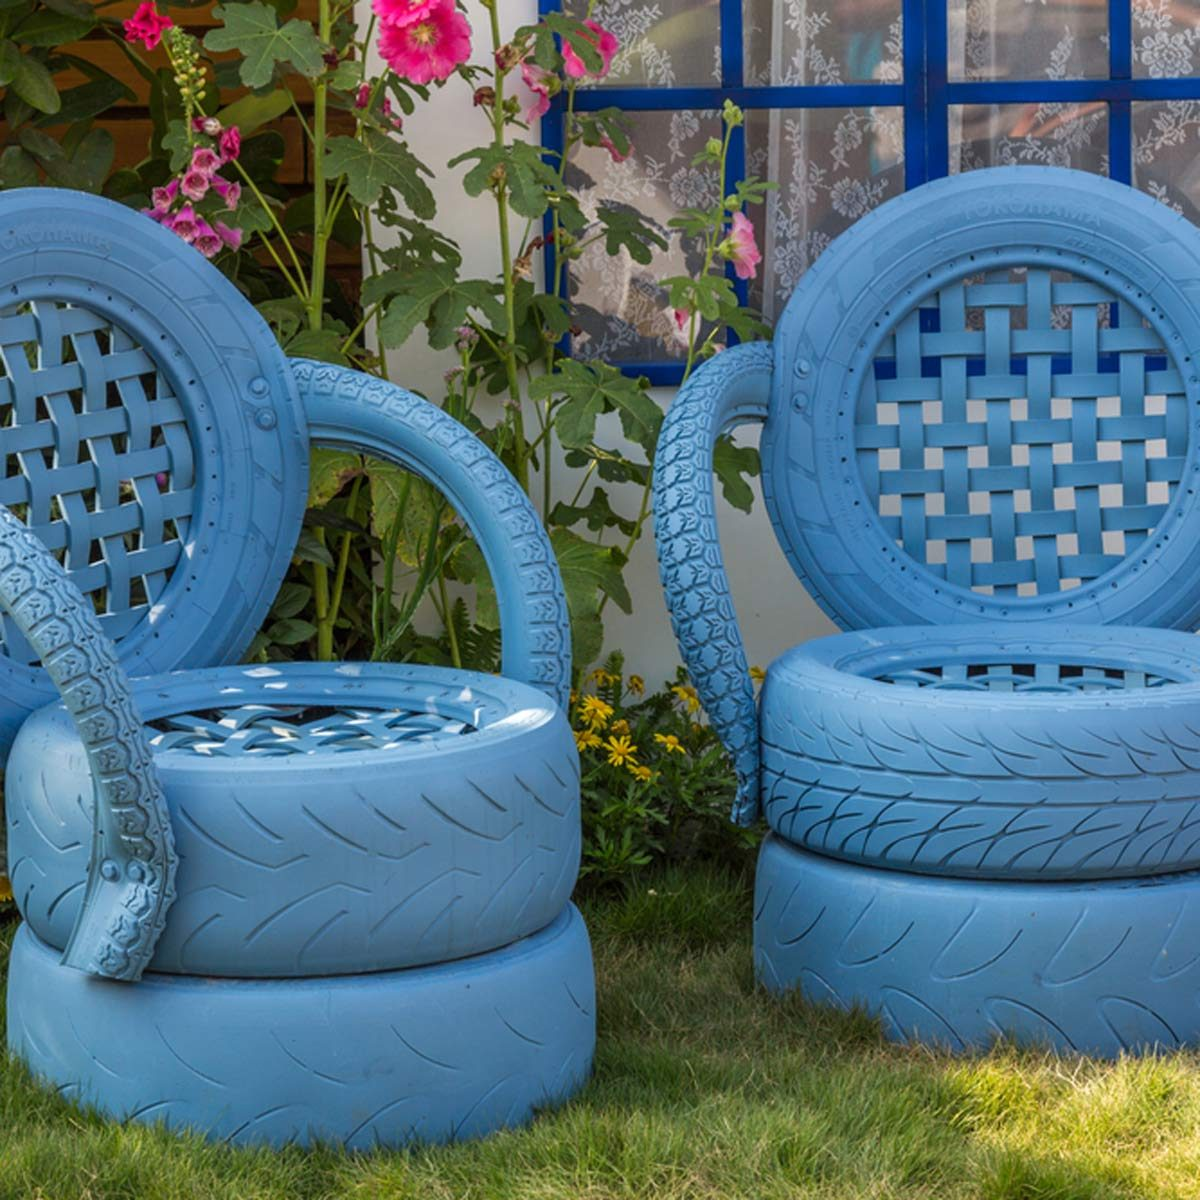 12 things you can do with an old tire the family handyman Things to make out of old tires